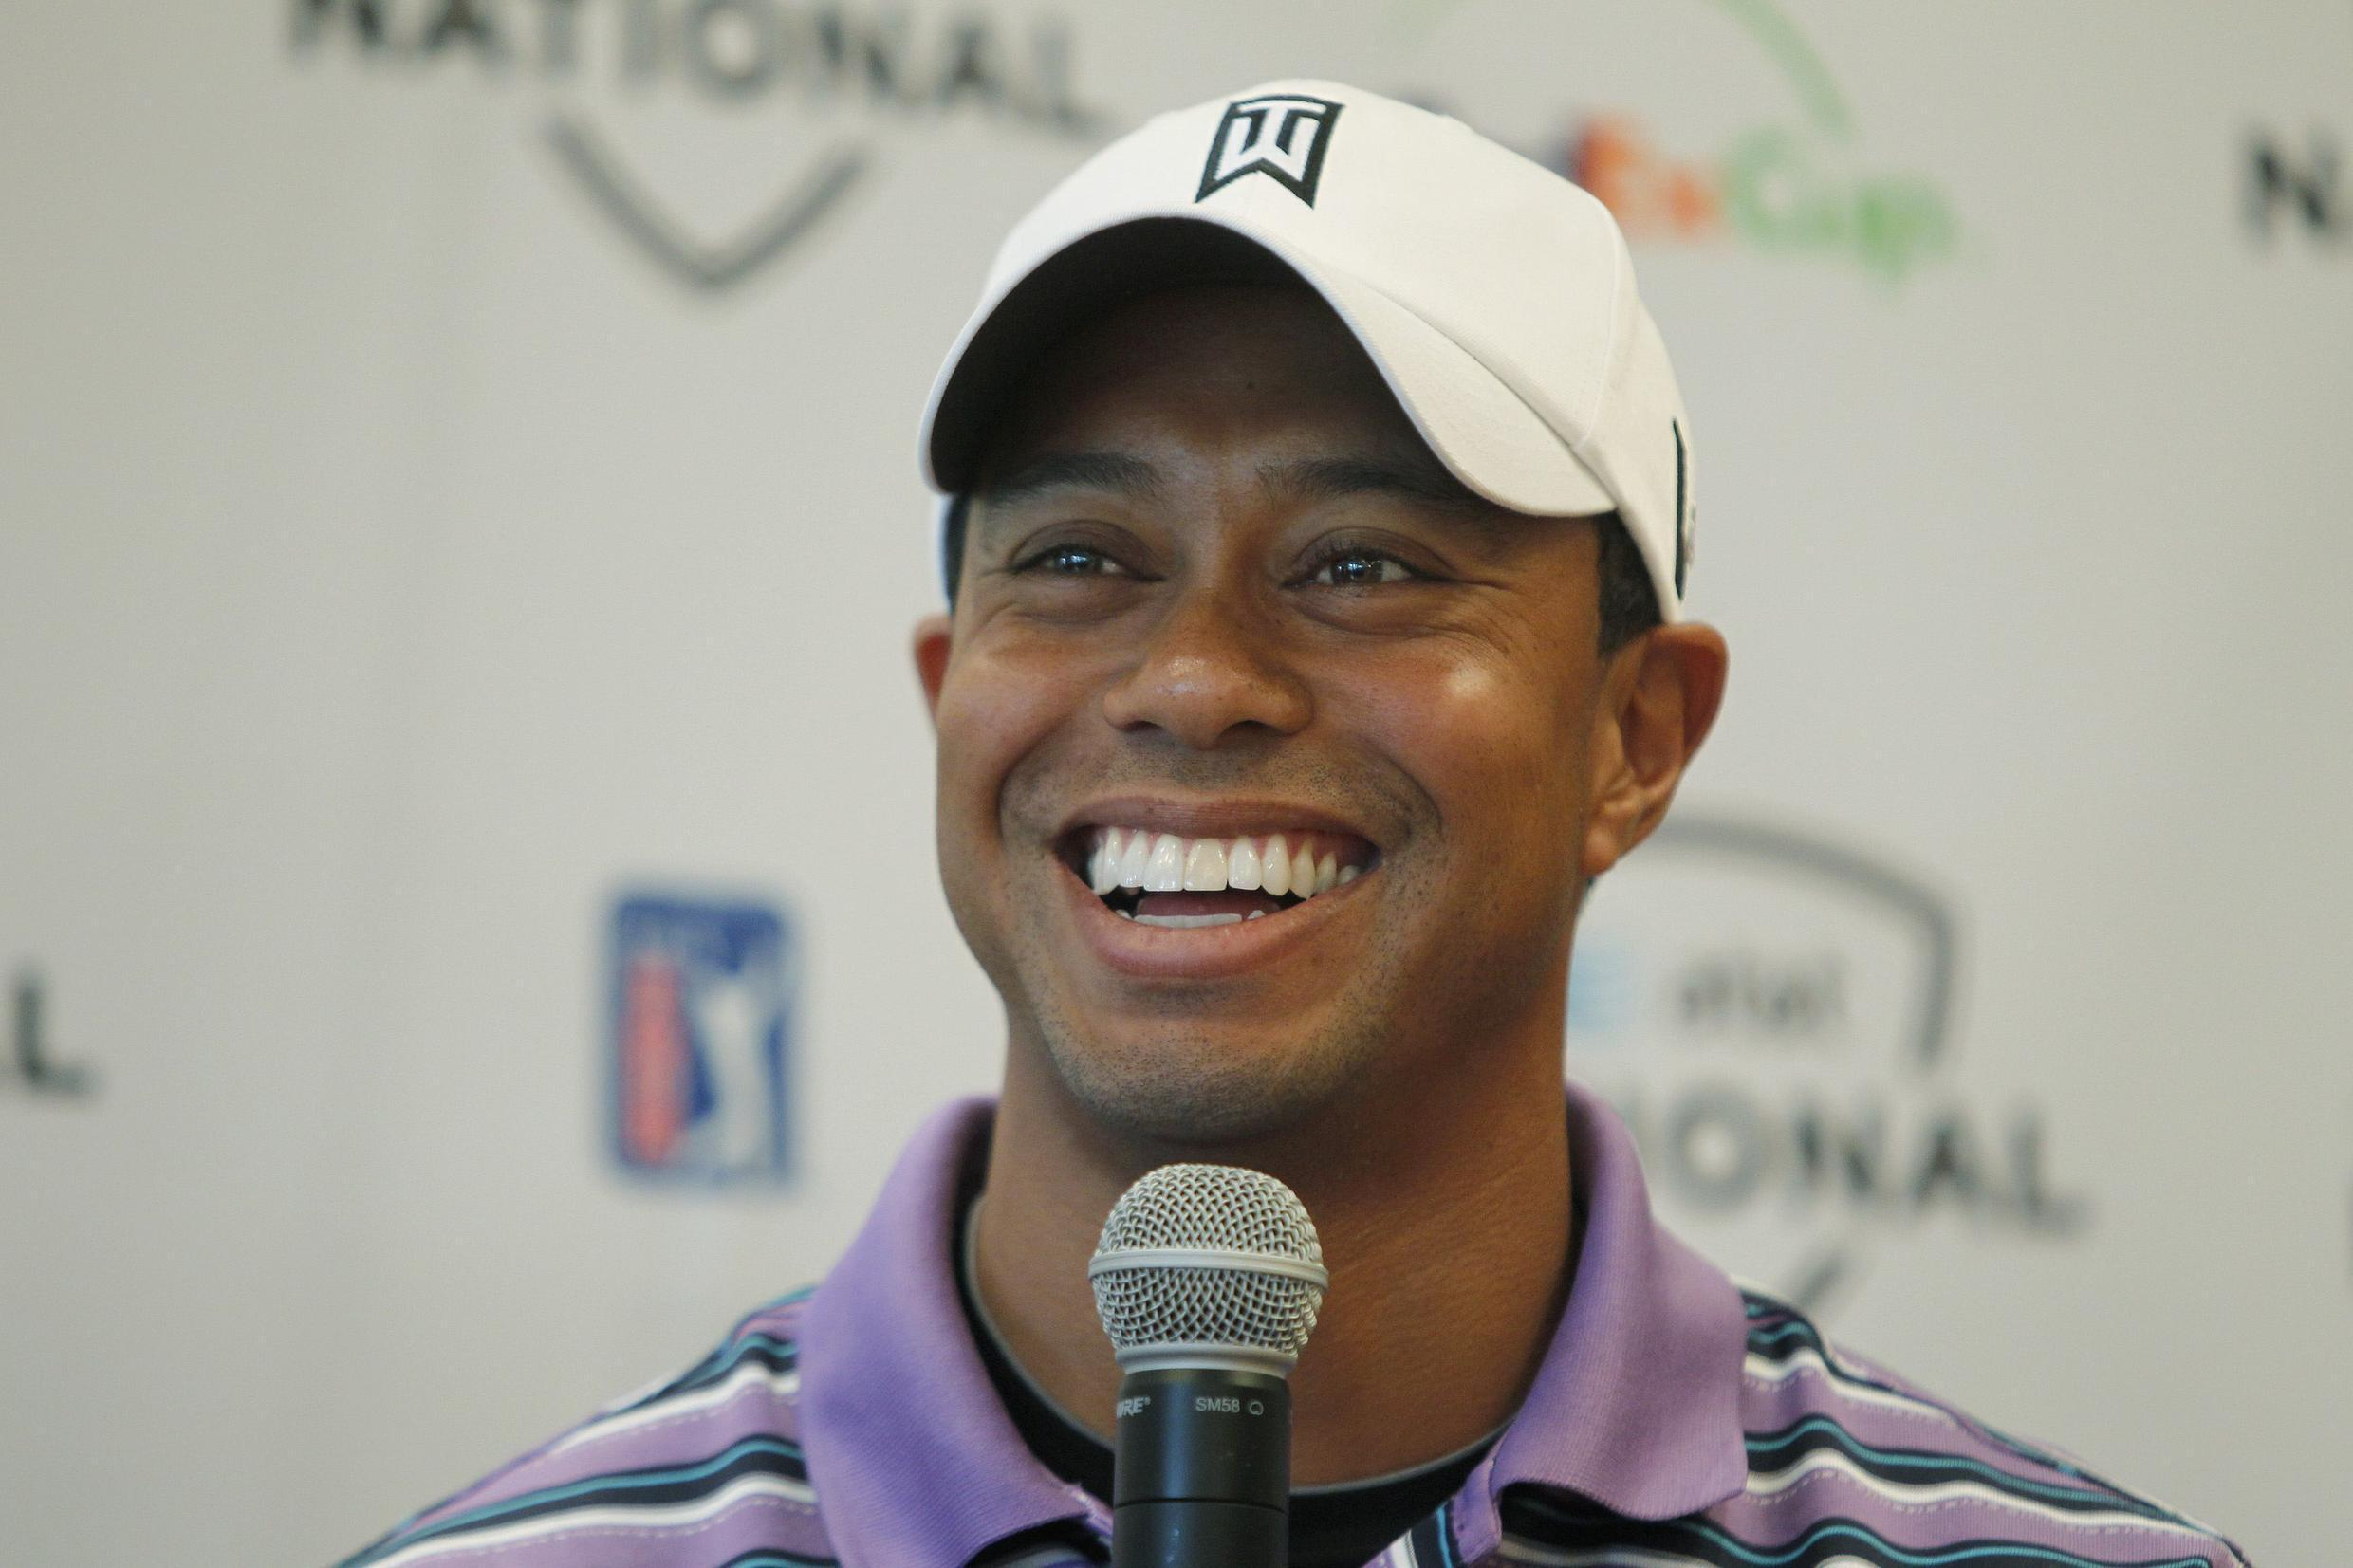 Tiger Woods smiles during a news conference to promote the AT&T National golf tournament at the Aronimink Golf Club in Newtown Square, 2011.